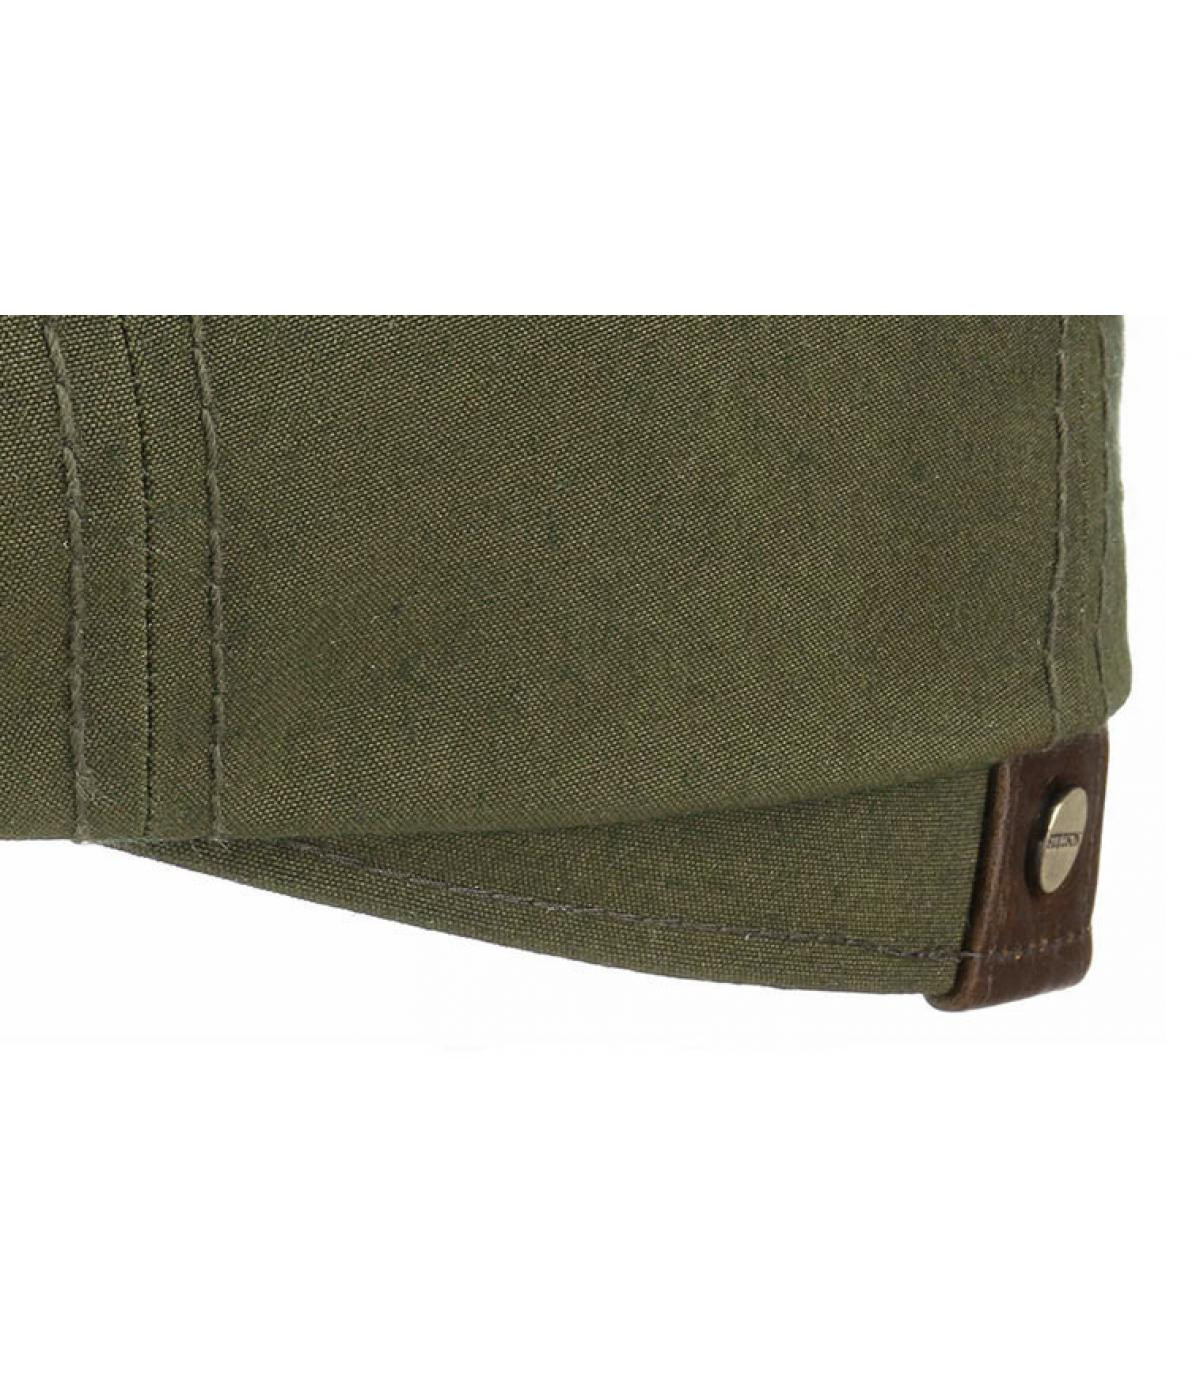 Dettagli Hatteras waxed cotton leather olive - image 3